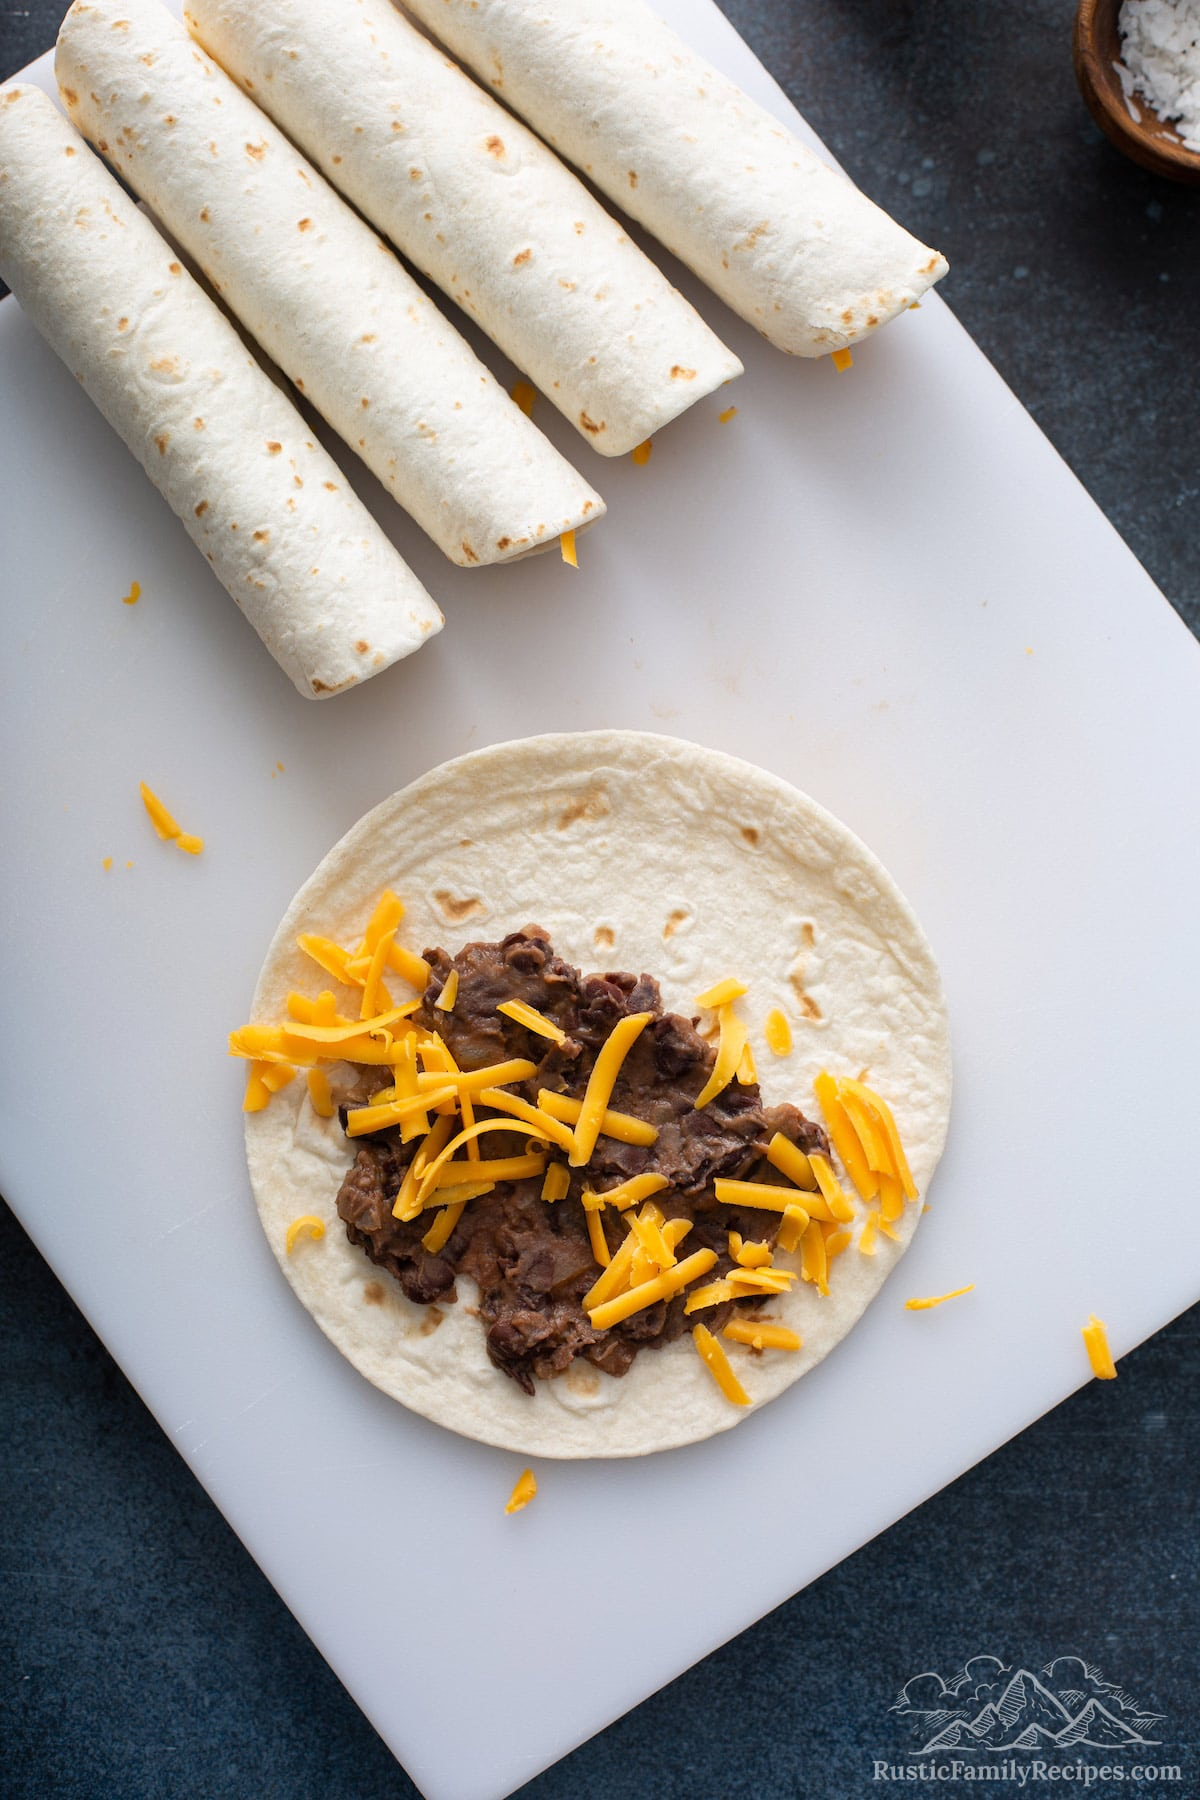 Flour tortillas with mashed beans and cheese.